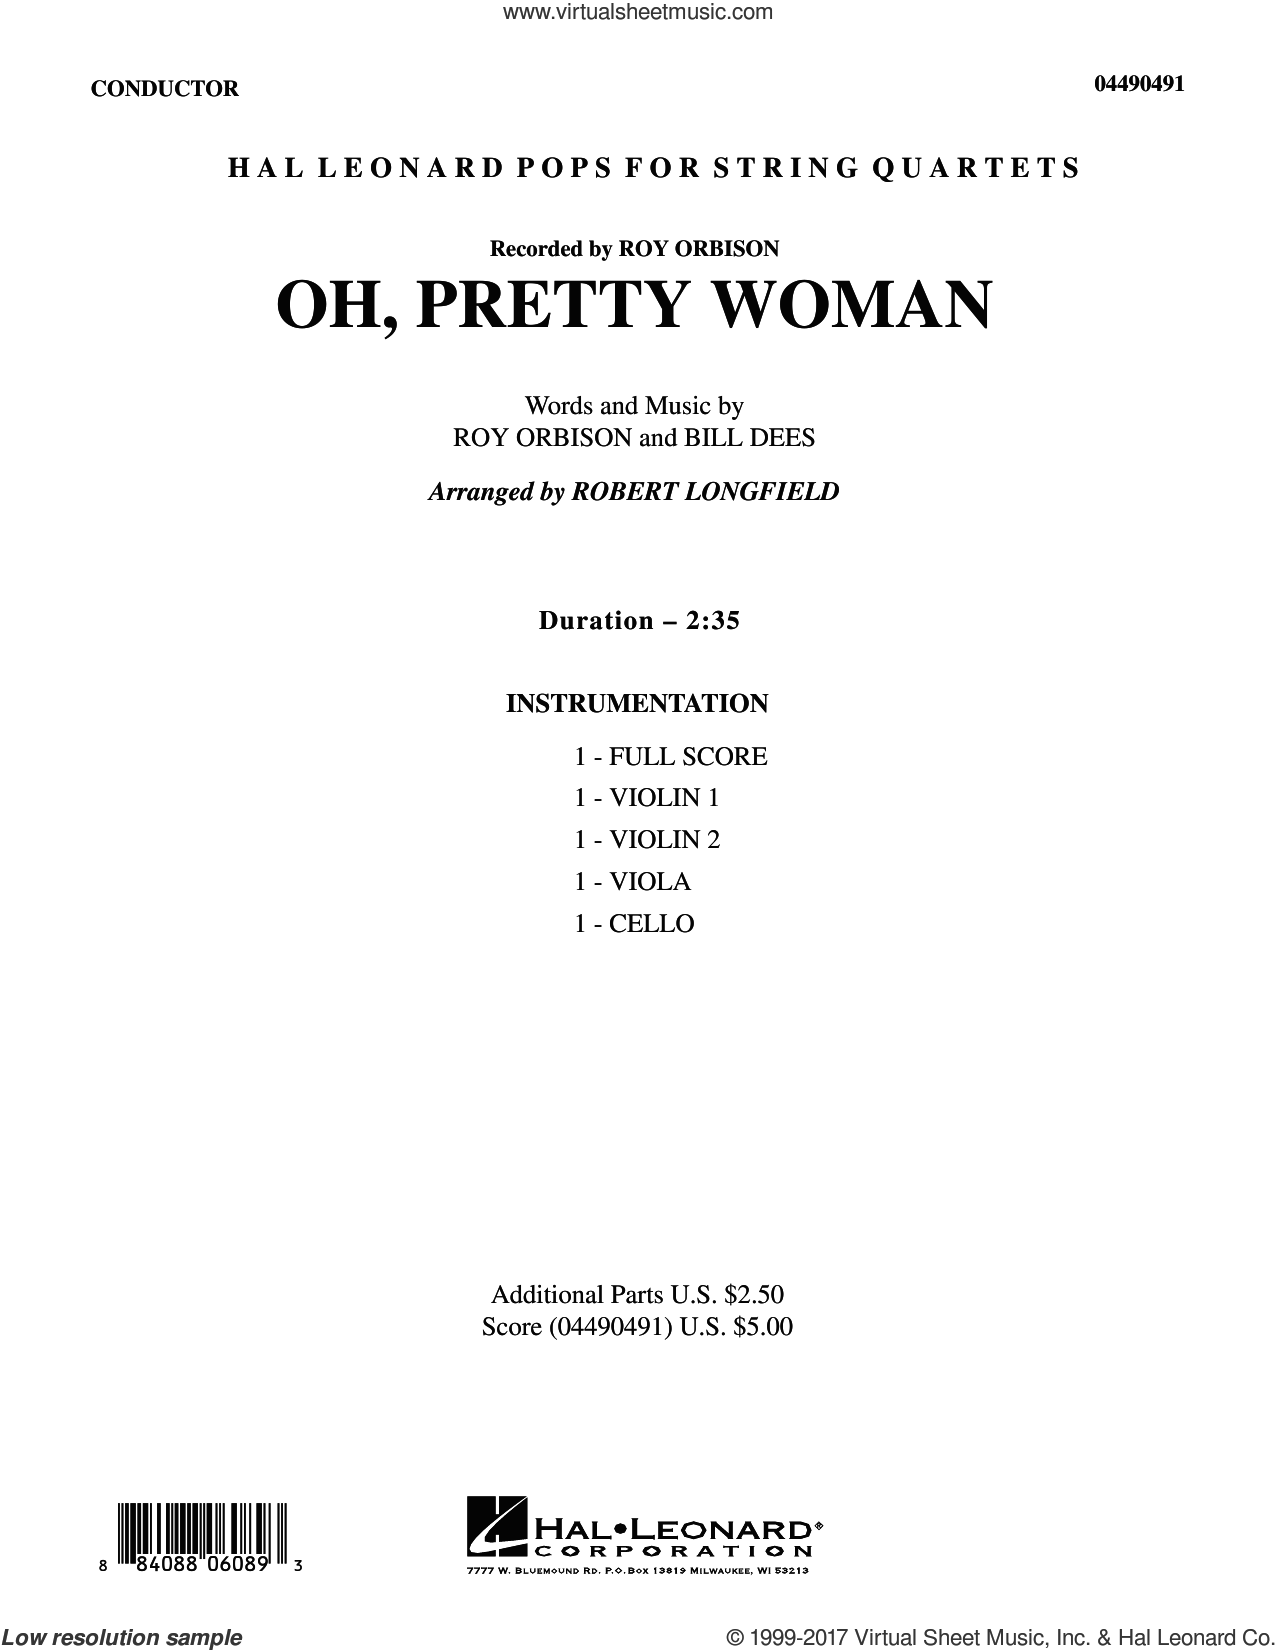 Oh, Pretty Woman (COMPLETE) sheet music for orchestra (Strings) by Robert Longfield, Bill Dees, Edward Van Halen and Roy Orbison, intermediate skill level